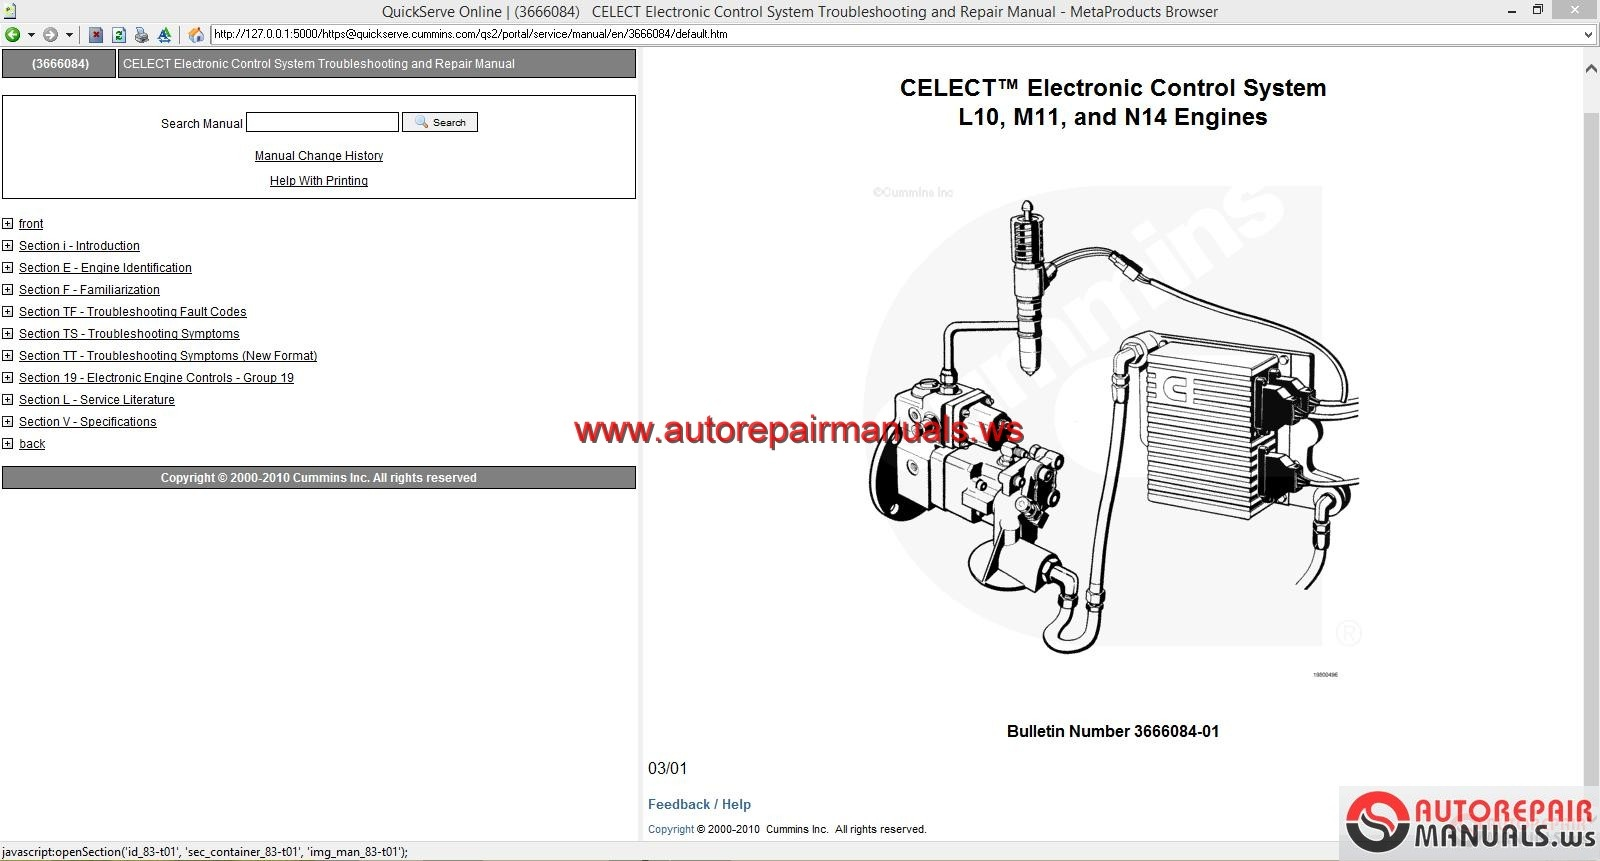 Cummins CELECT Electronic Control System L10,M11 and N14